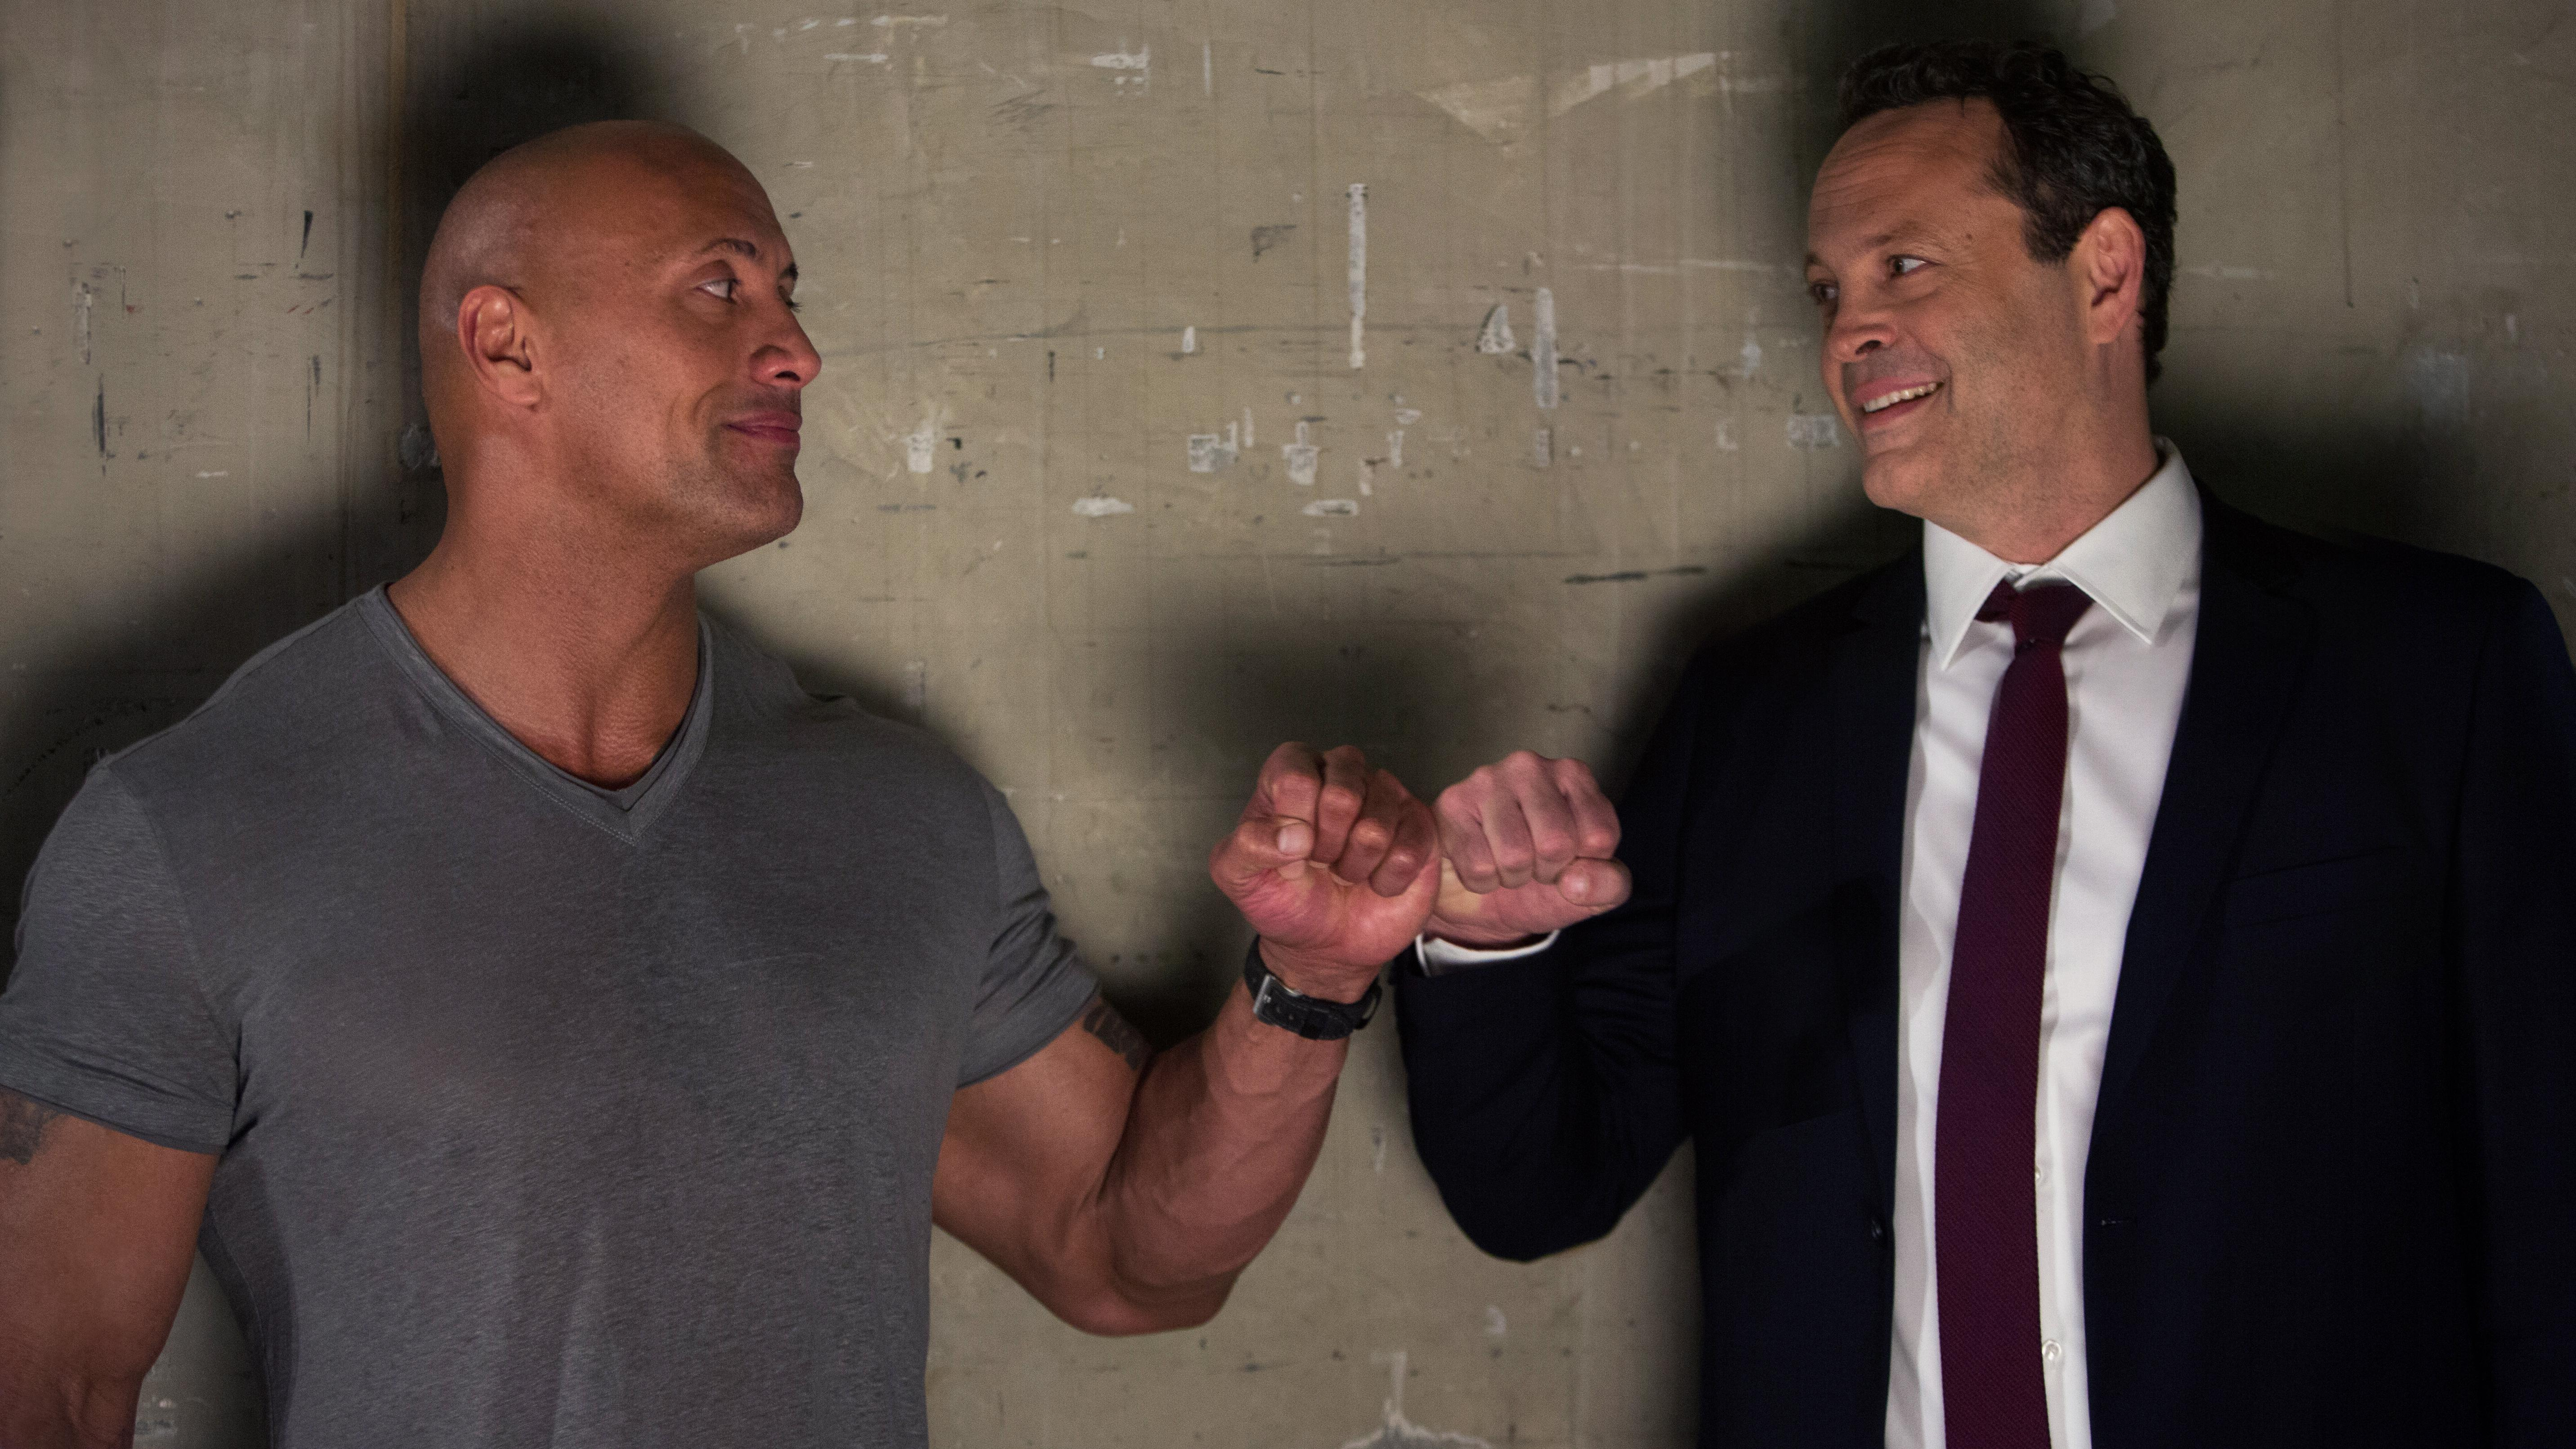 Dwayne Johnson (left) as Himself and Vince Vaughn (right) as Hutch in FIGHTING WITH MY FAMILY, directed by Stephen Merchant, a Metro Goldwyn Mayer Pictures film.Credit: Robert Viglasky / Metro Goldwyn Mayer Pictures© 2018 Metro-Goldwyn-Mayer Pictures Inc.{ } All Rights Reserved.